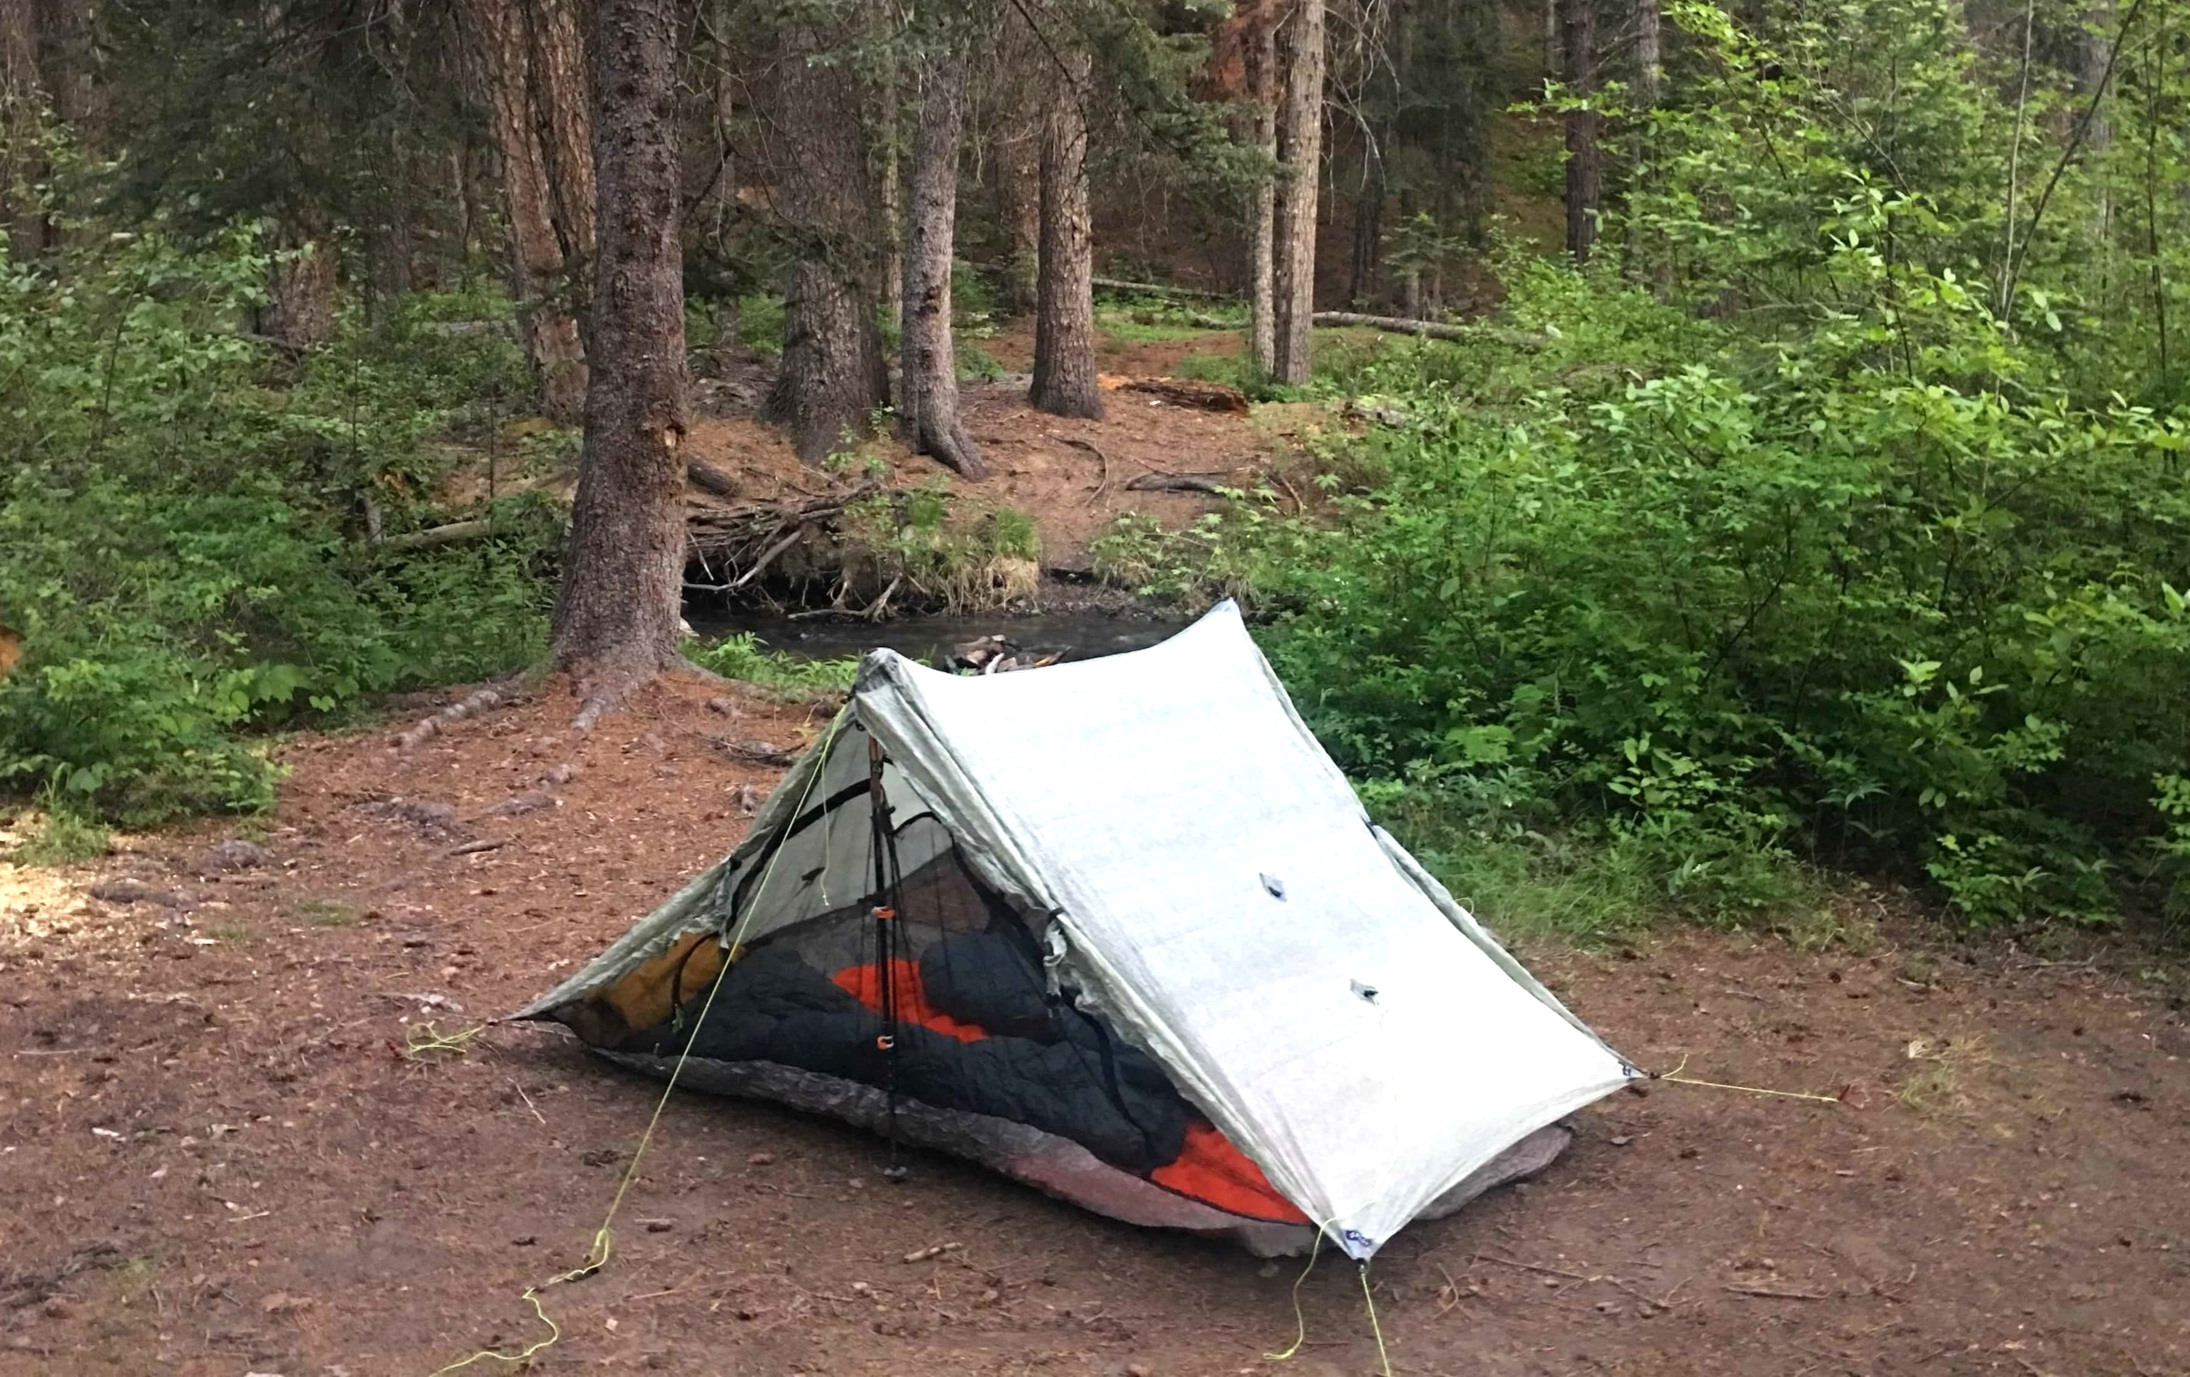 Treeline founder Naomi Hudetz, a side sleeper, reports sleeping better on the REI Flash Insulated pad than any other pad she's tried. Photo courtesy Naomi Hudetz